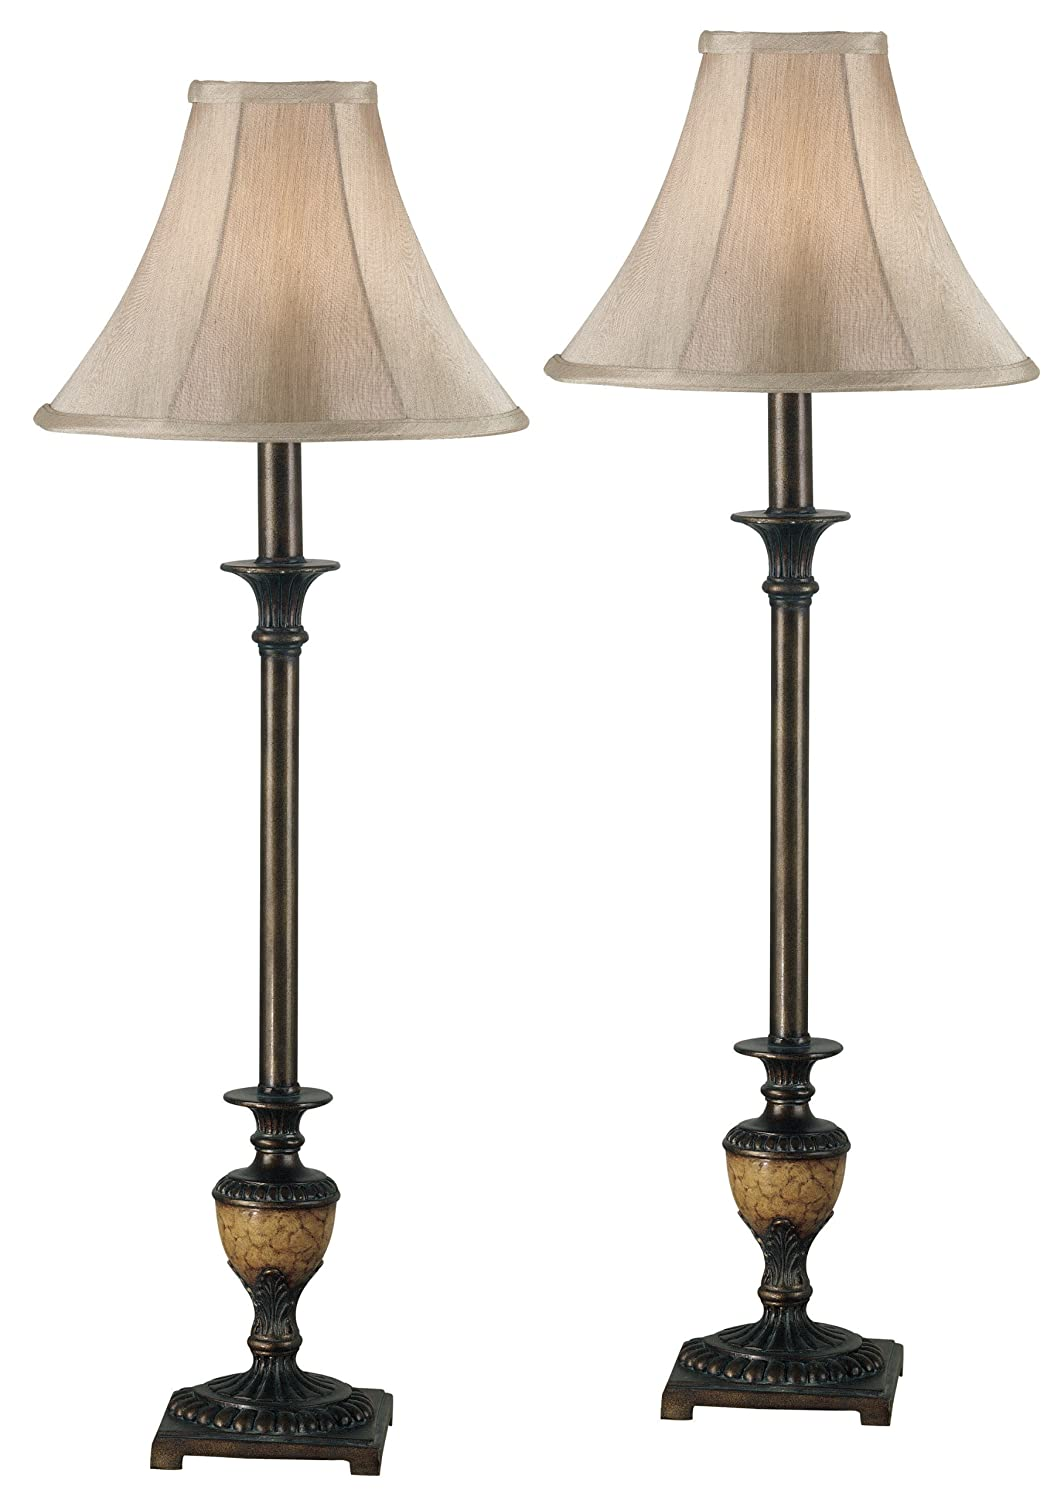 Kenroy Home 30944 Emily Buffet Lamp set of 2